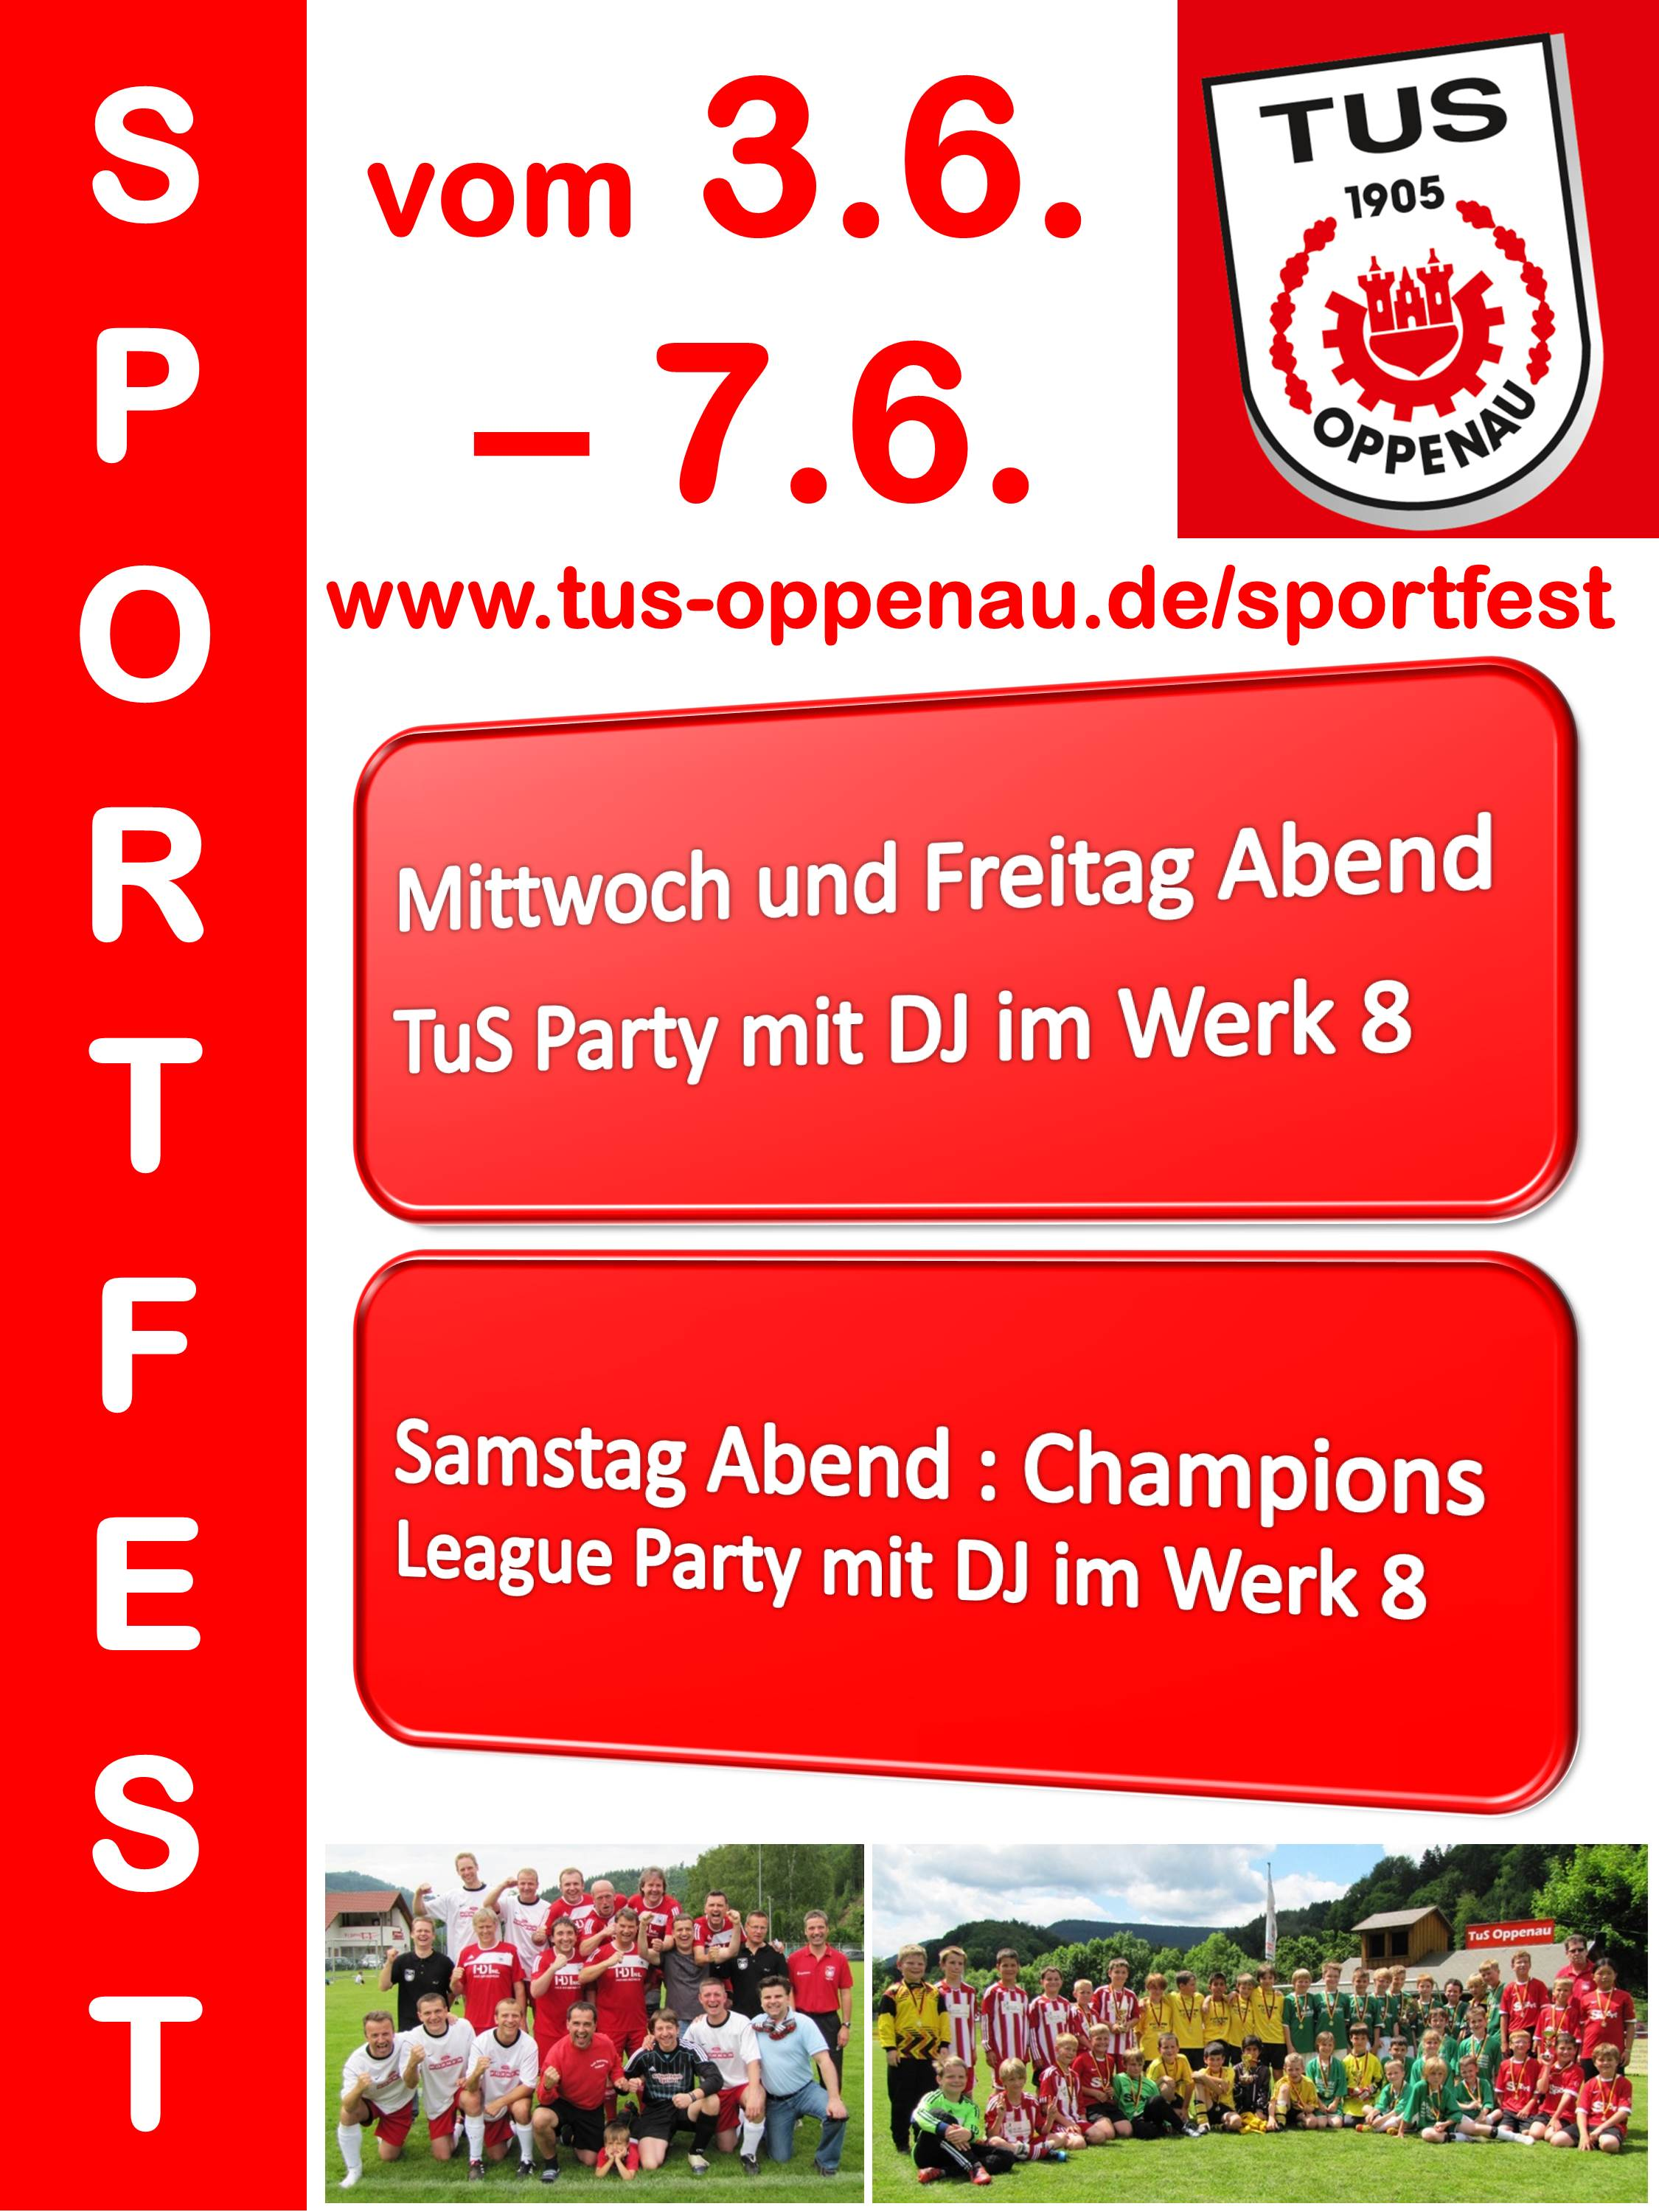 Sportfest_Flyer-page-001_thumb2